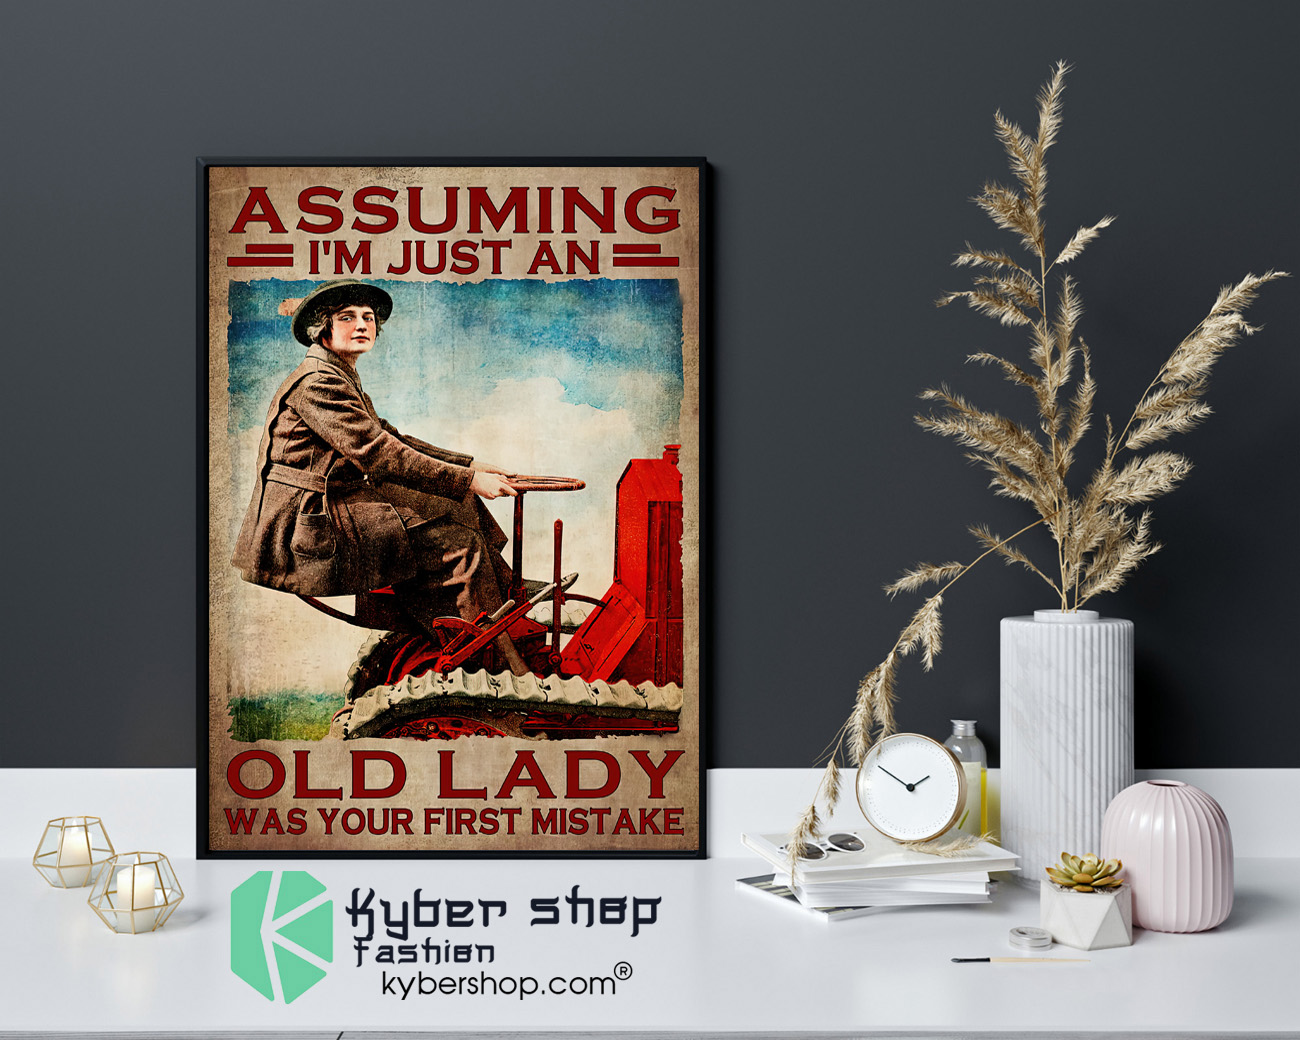 Assuming Im just an old lady was your first mistake poster 4